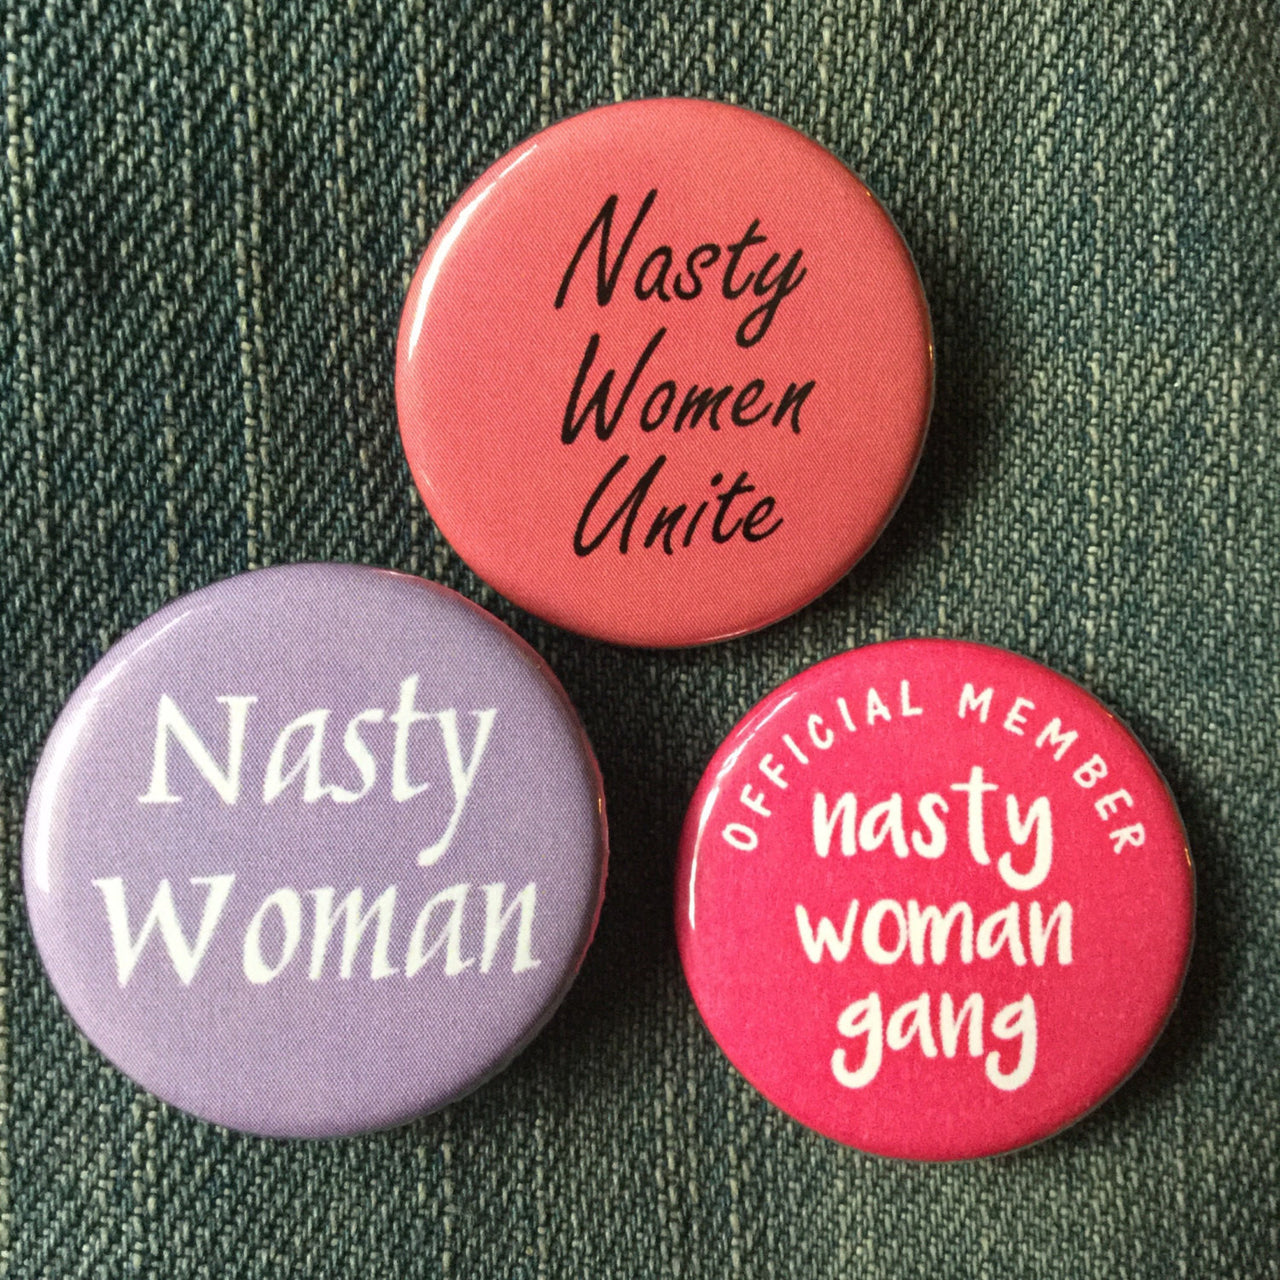 Nasty woman buttons